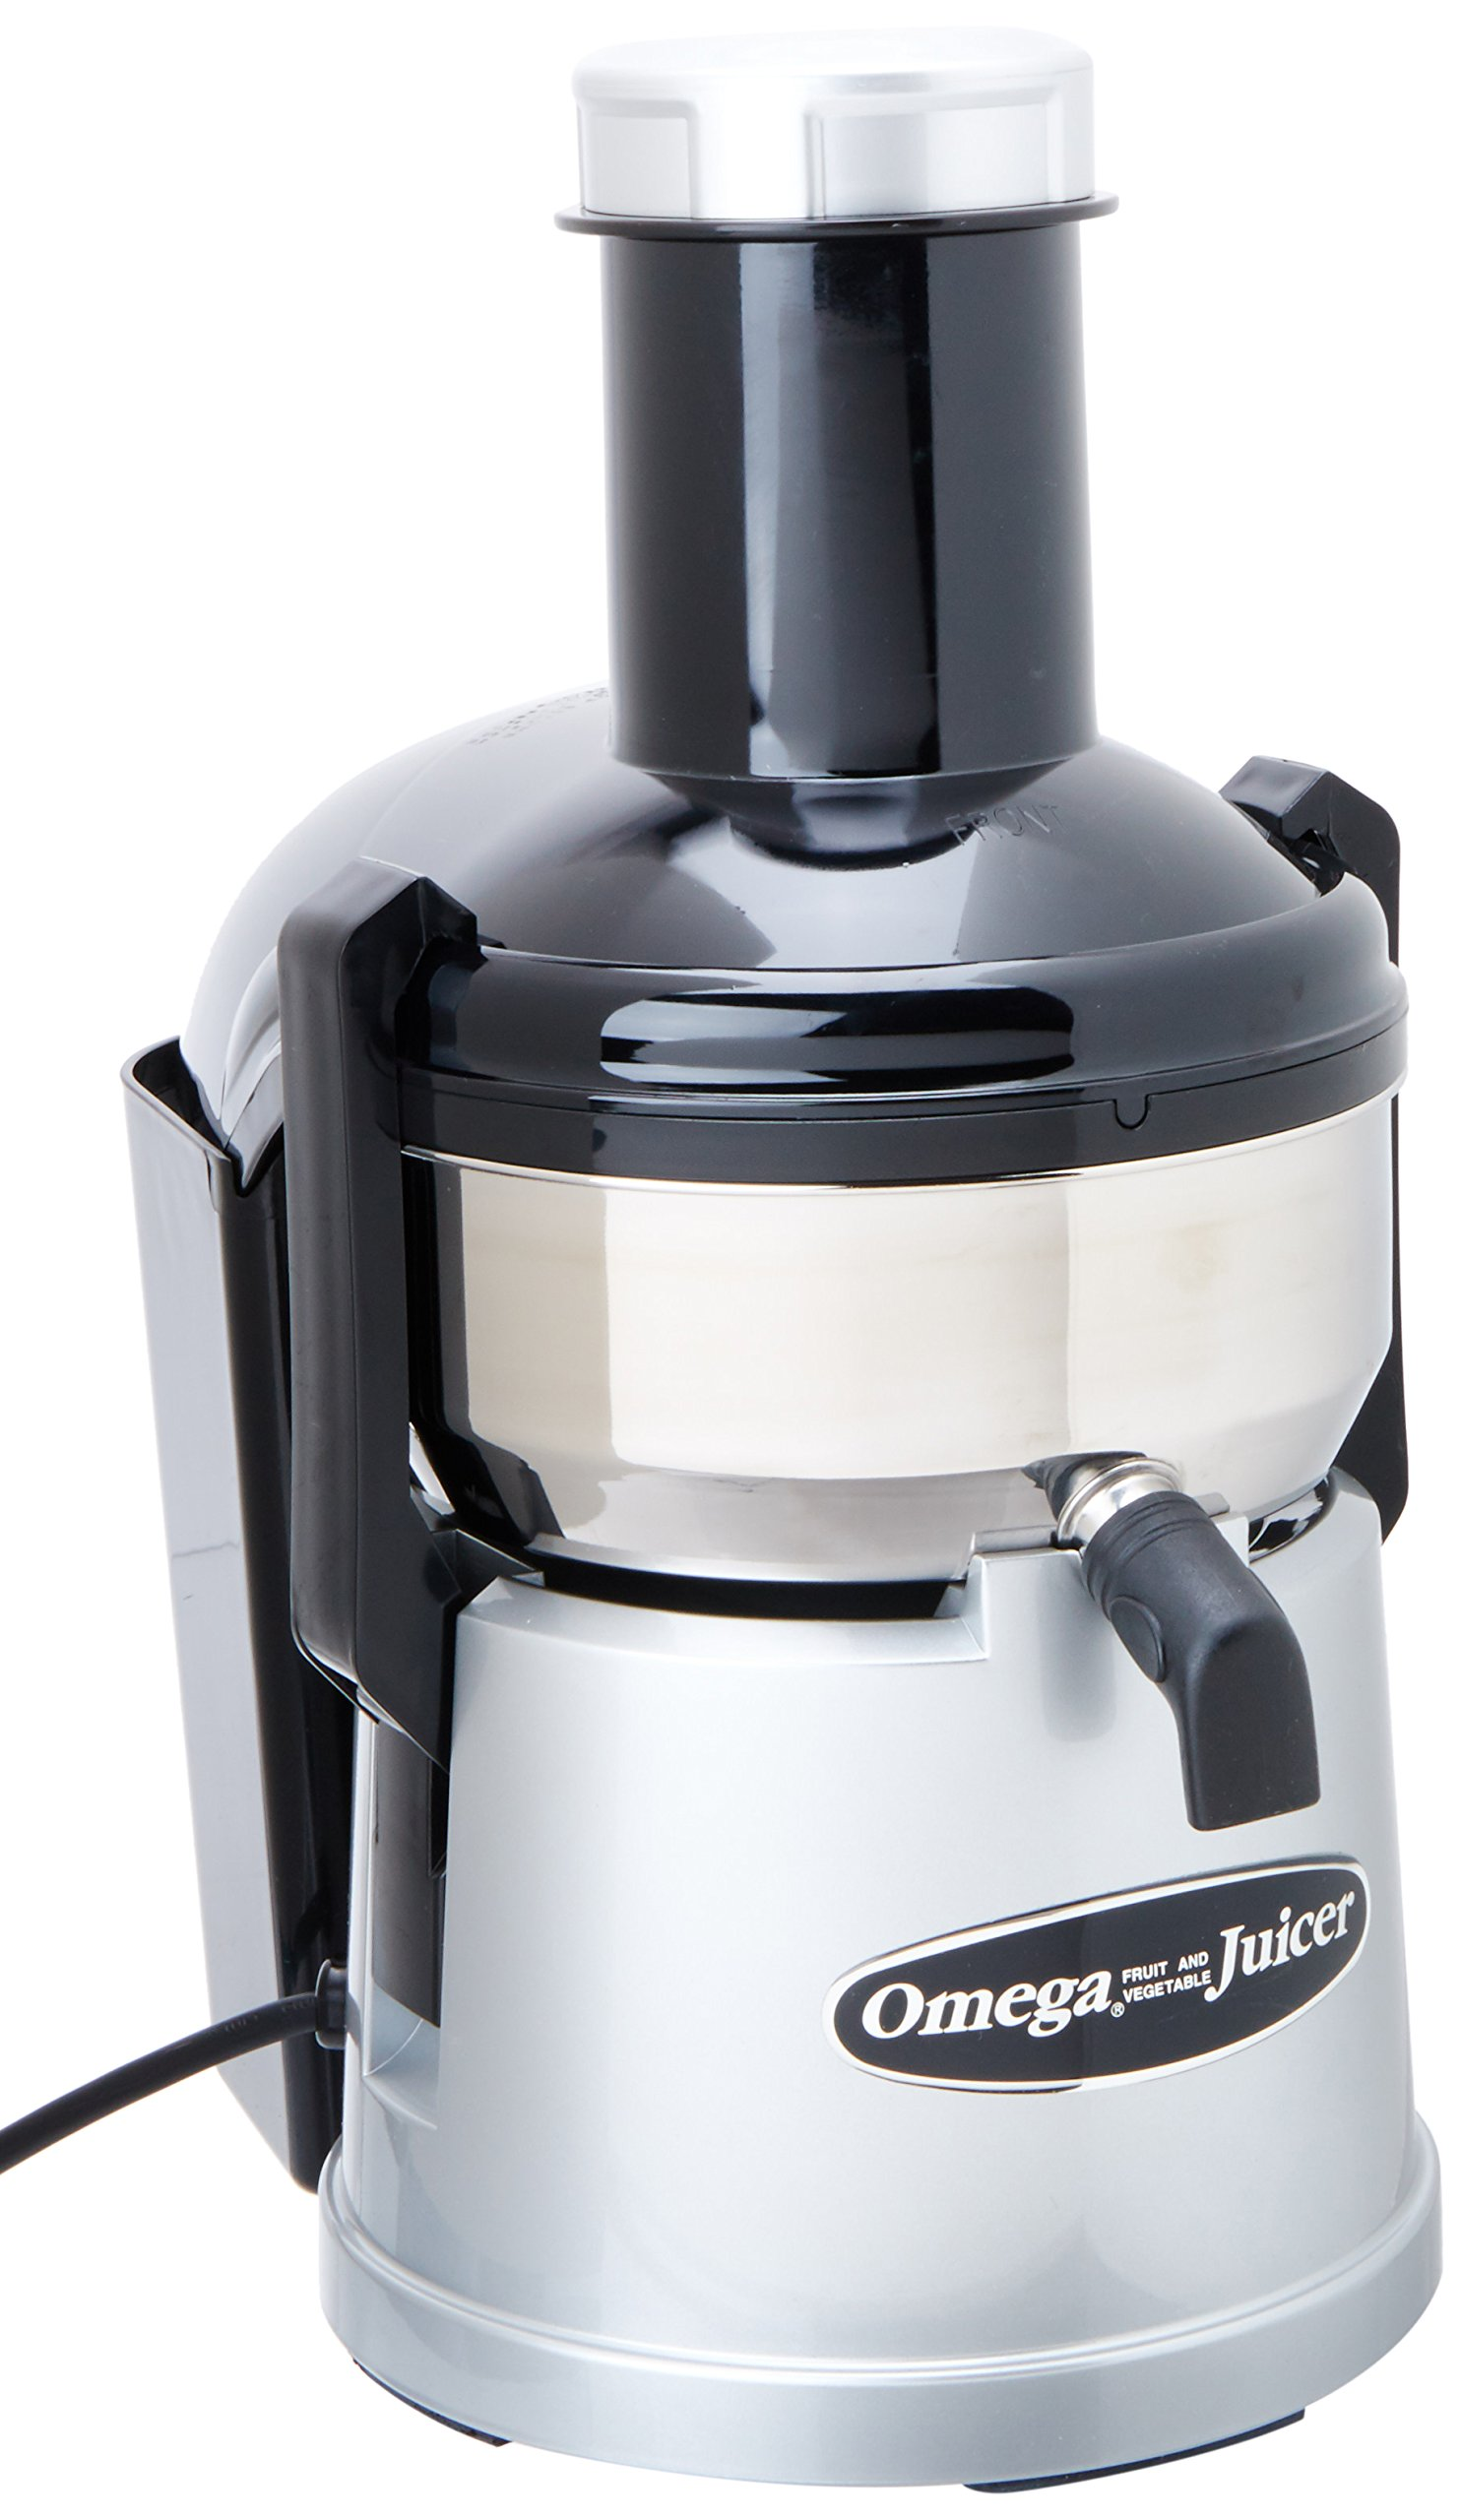 Omega BMJ330 Mega Mouth Juicer with Extra Large Feed Chute for Larger Portions of Fruits and Vegetables Ejection with Pulp Catch Bucket, 375W, Silver by Omega